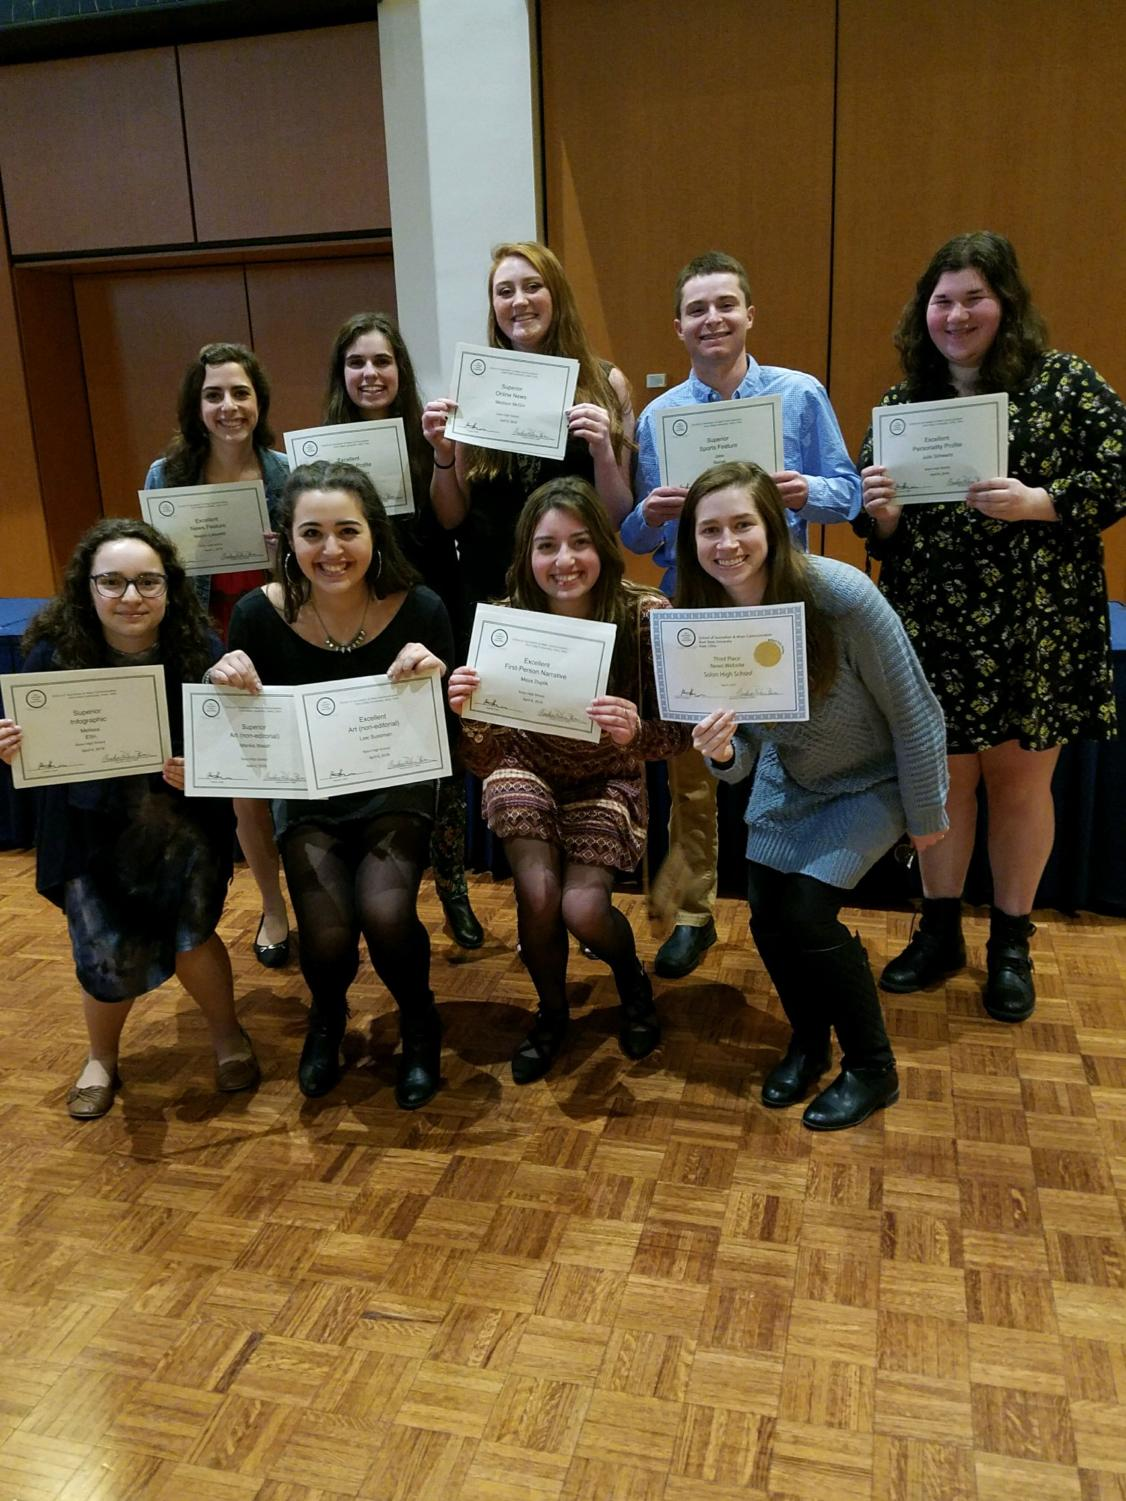 (From top left) Megan Lebowitz, Christina Cartwright, Madison McGirr, Jake Novack, Julia Schwartz. (From bottom left) Melissa Ellin, Lexi Sussman, Maya Duplik, Margaret Locke. At the OSMA state conference, the Courier racked up 20 individual awards and one staff award.